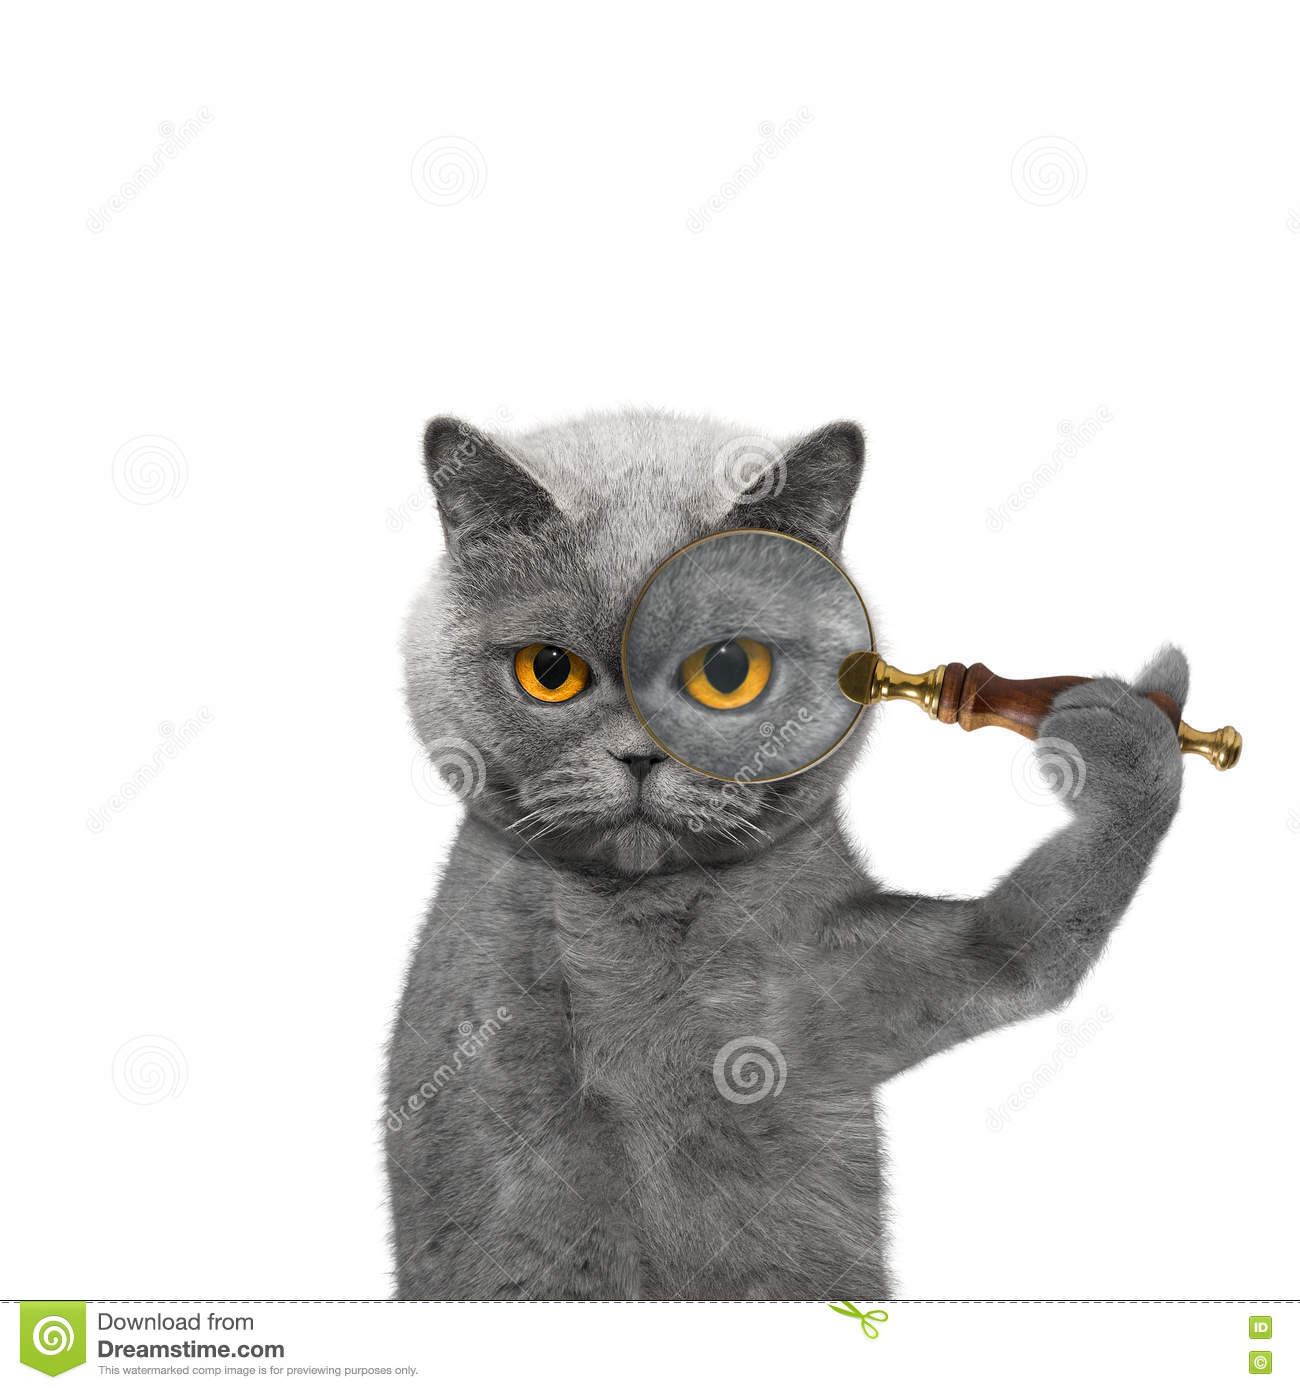 dcedd670 Cat Looking Through A Magnifying Glass Magnifier Stock Photo - Image ...